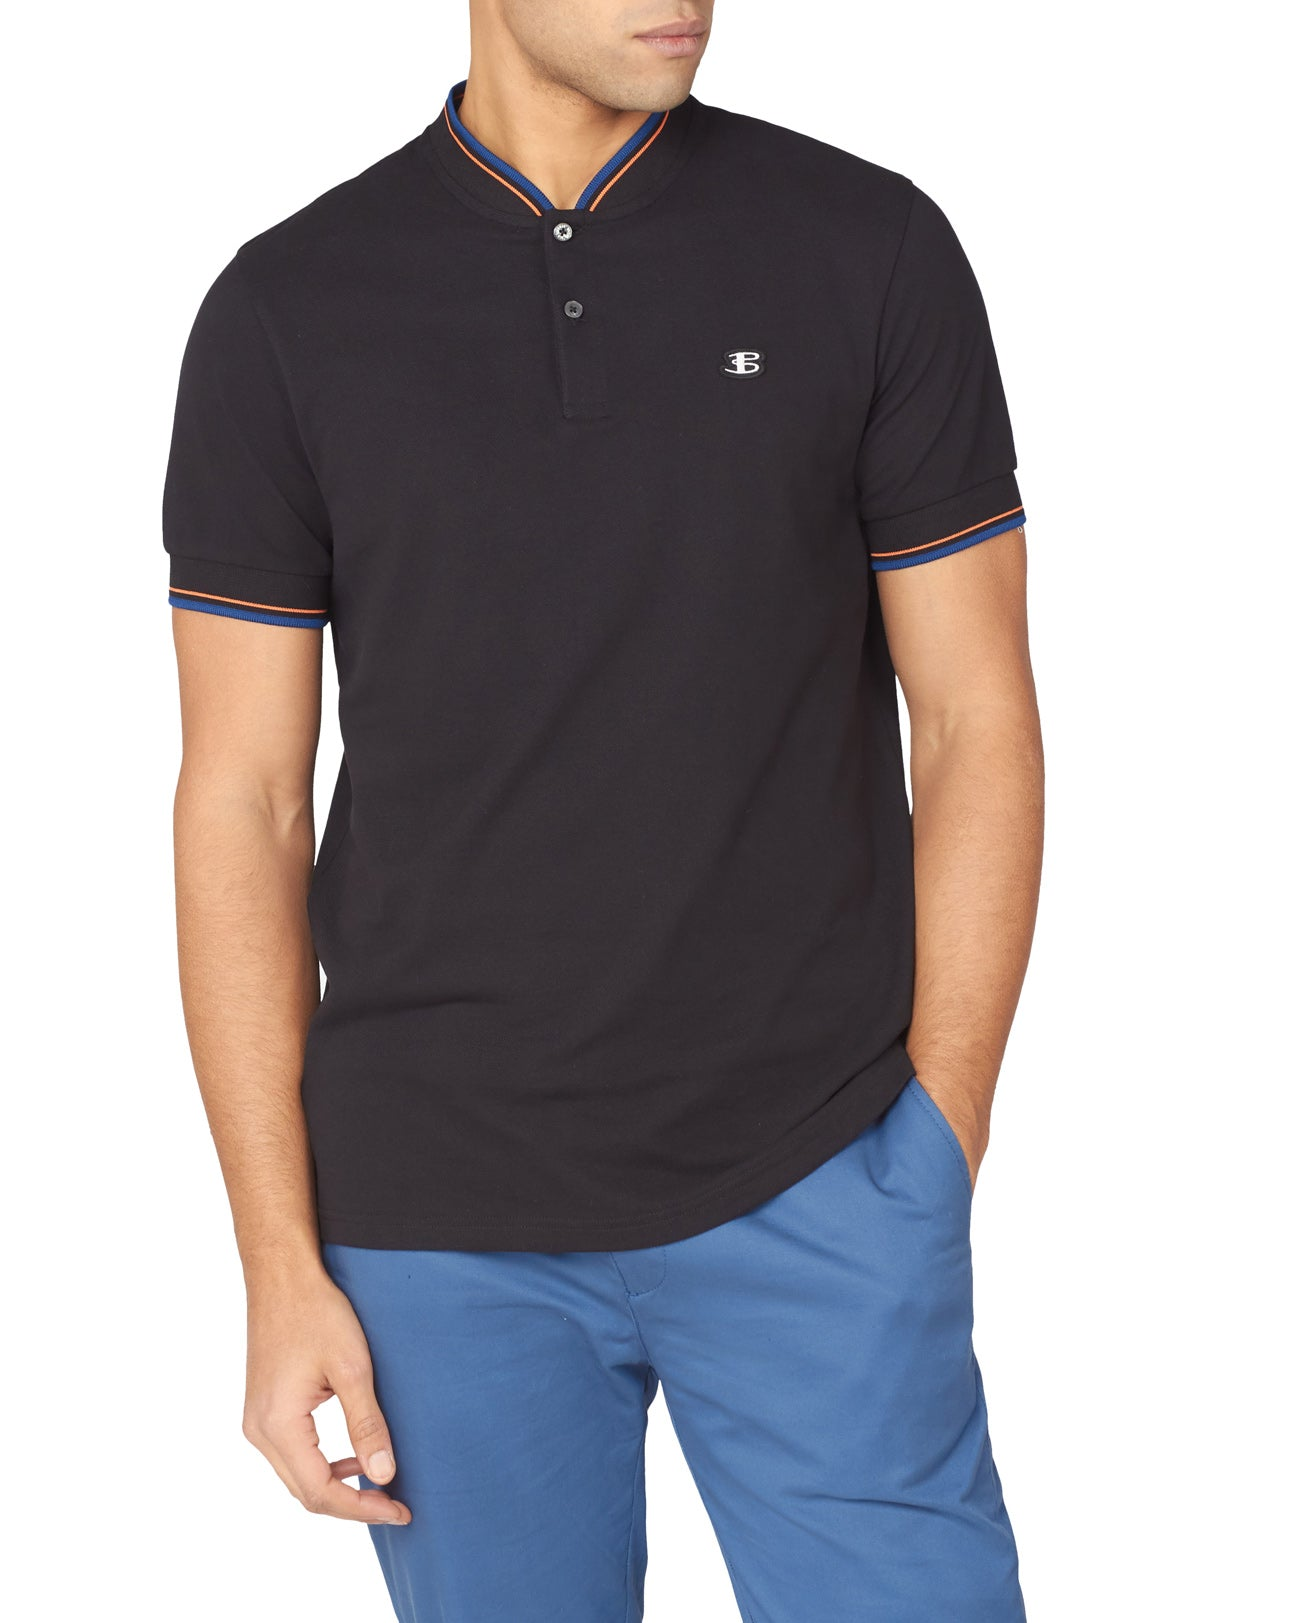 B by Ben Baseball-Collar Pique Polo - Black